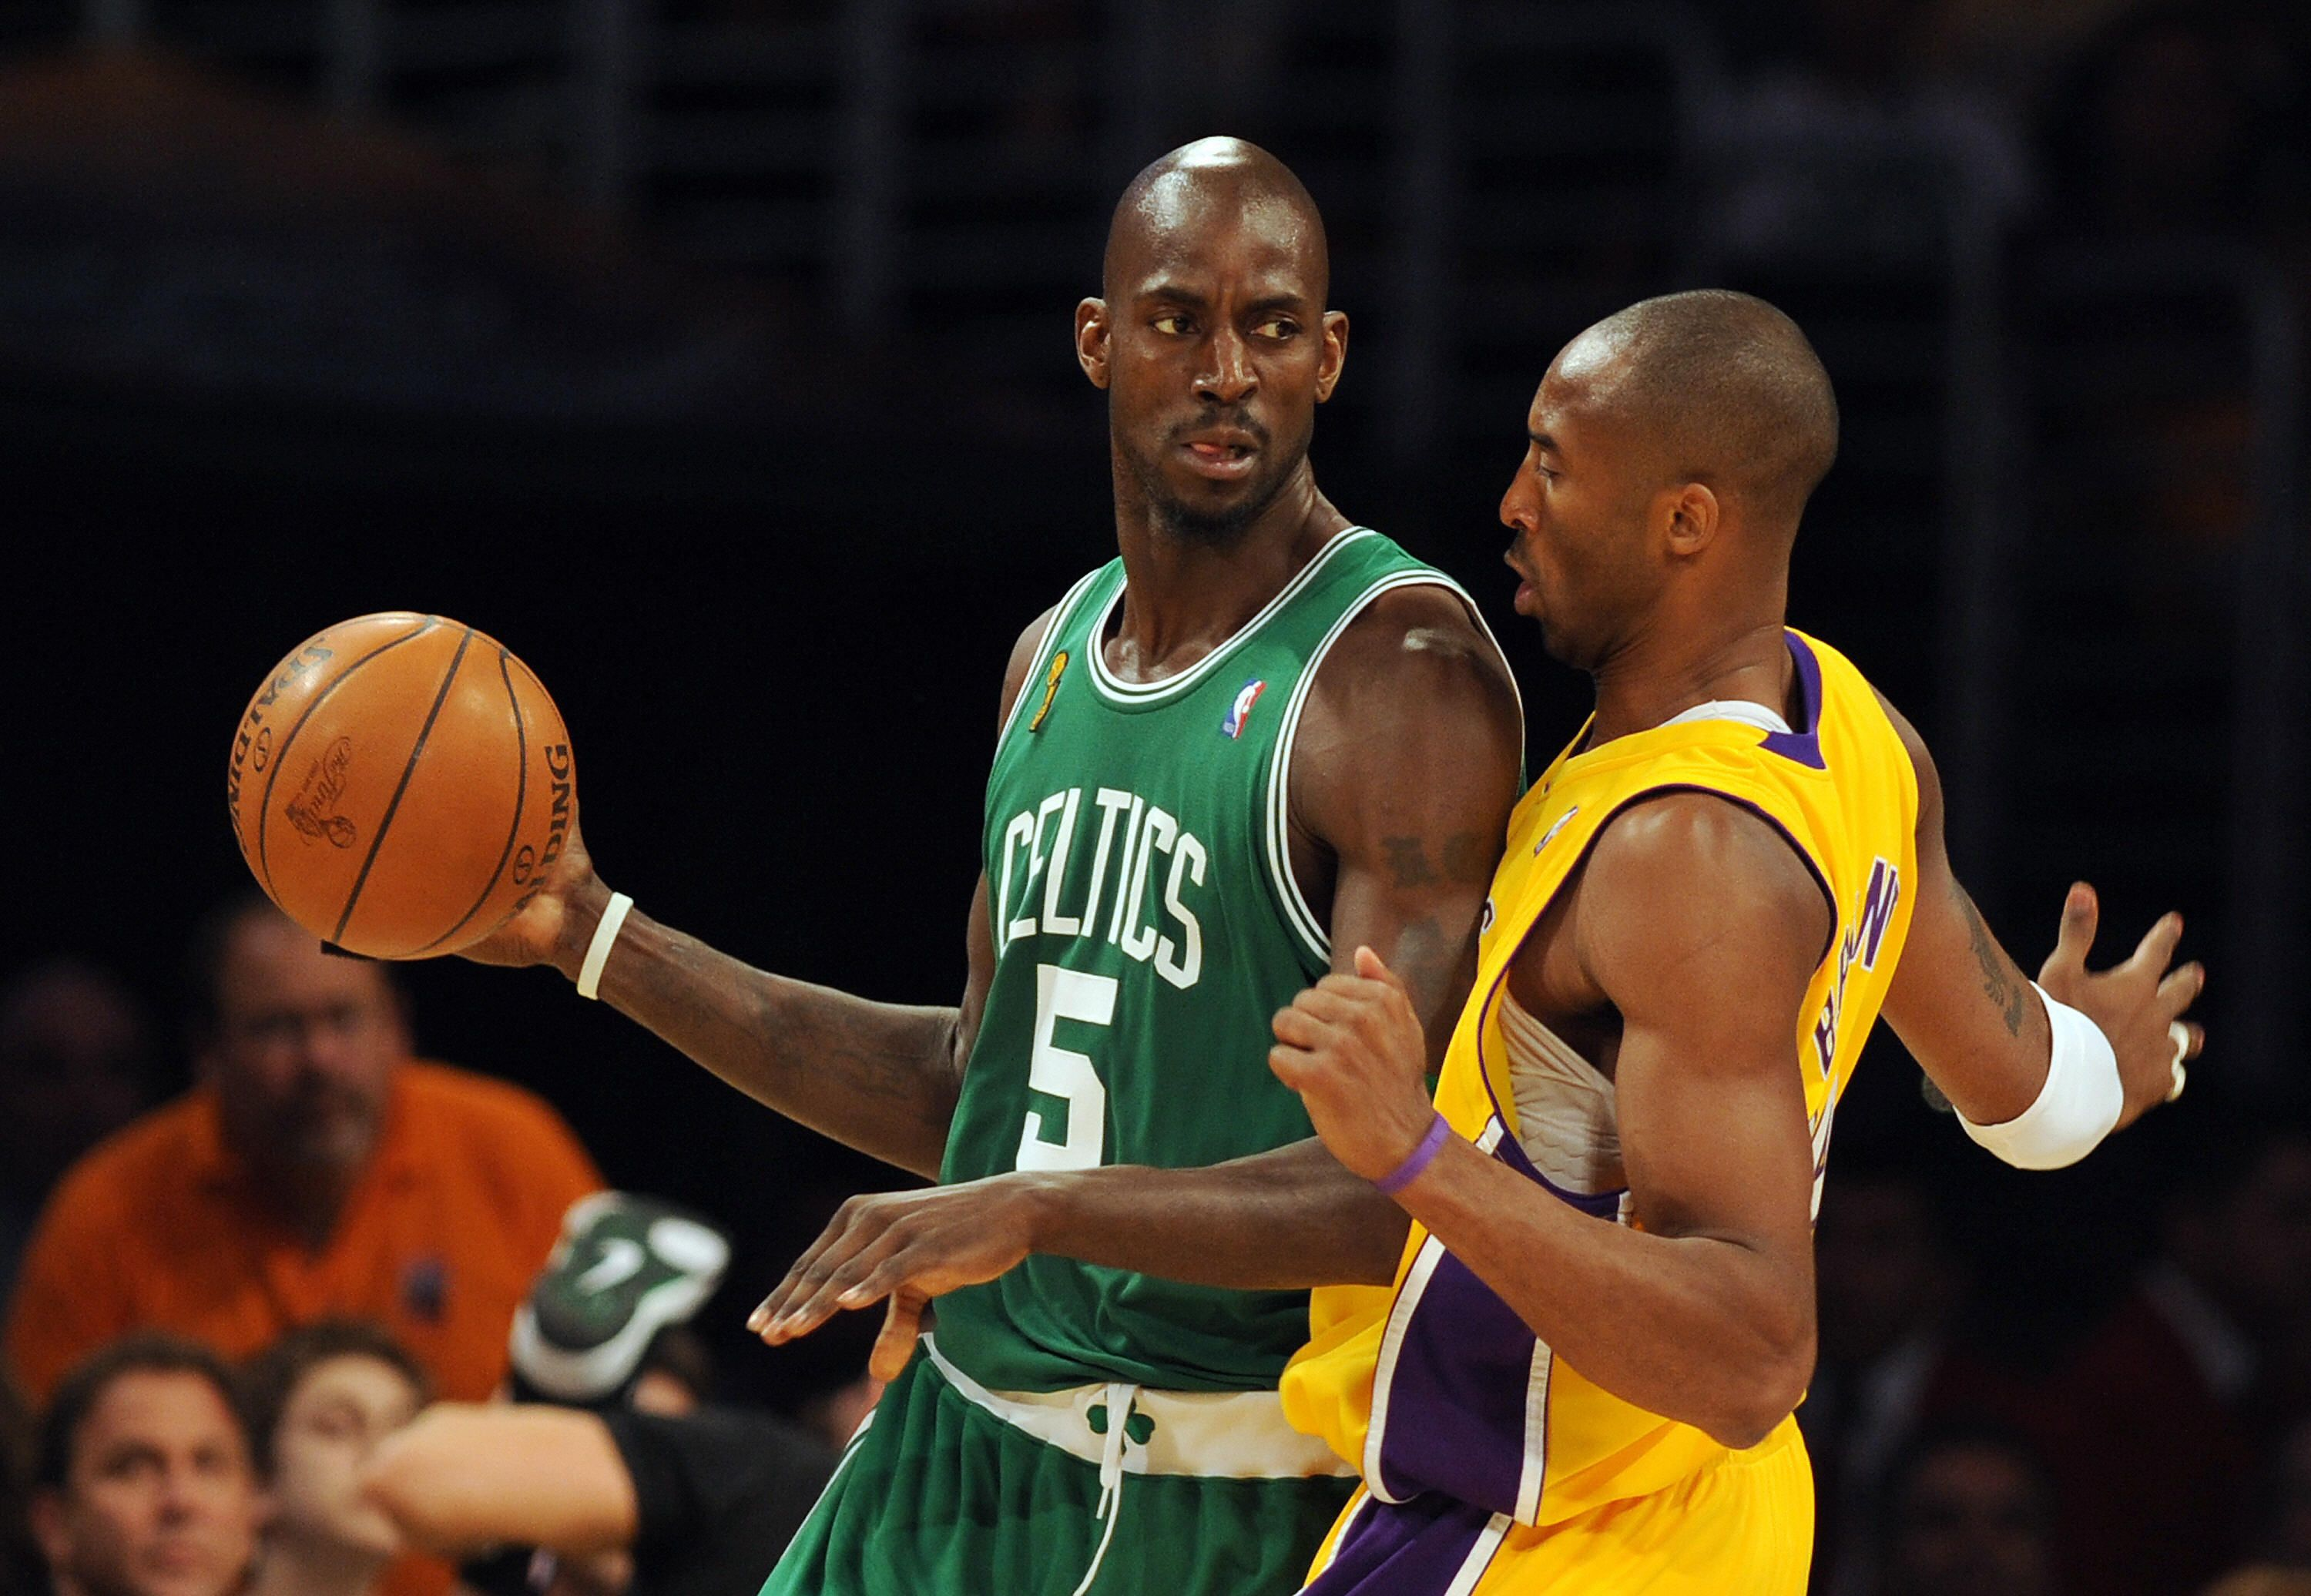 Kevin Garnett and Kobe Bryant are two of the 2020 Basketball Hall of Fame inductees.